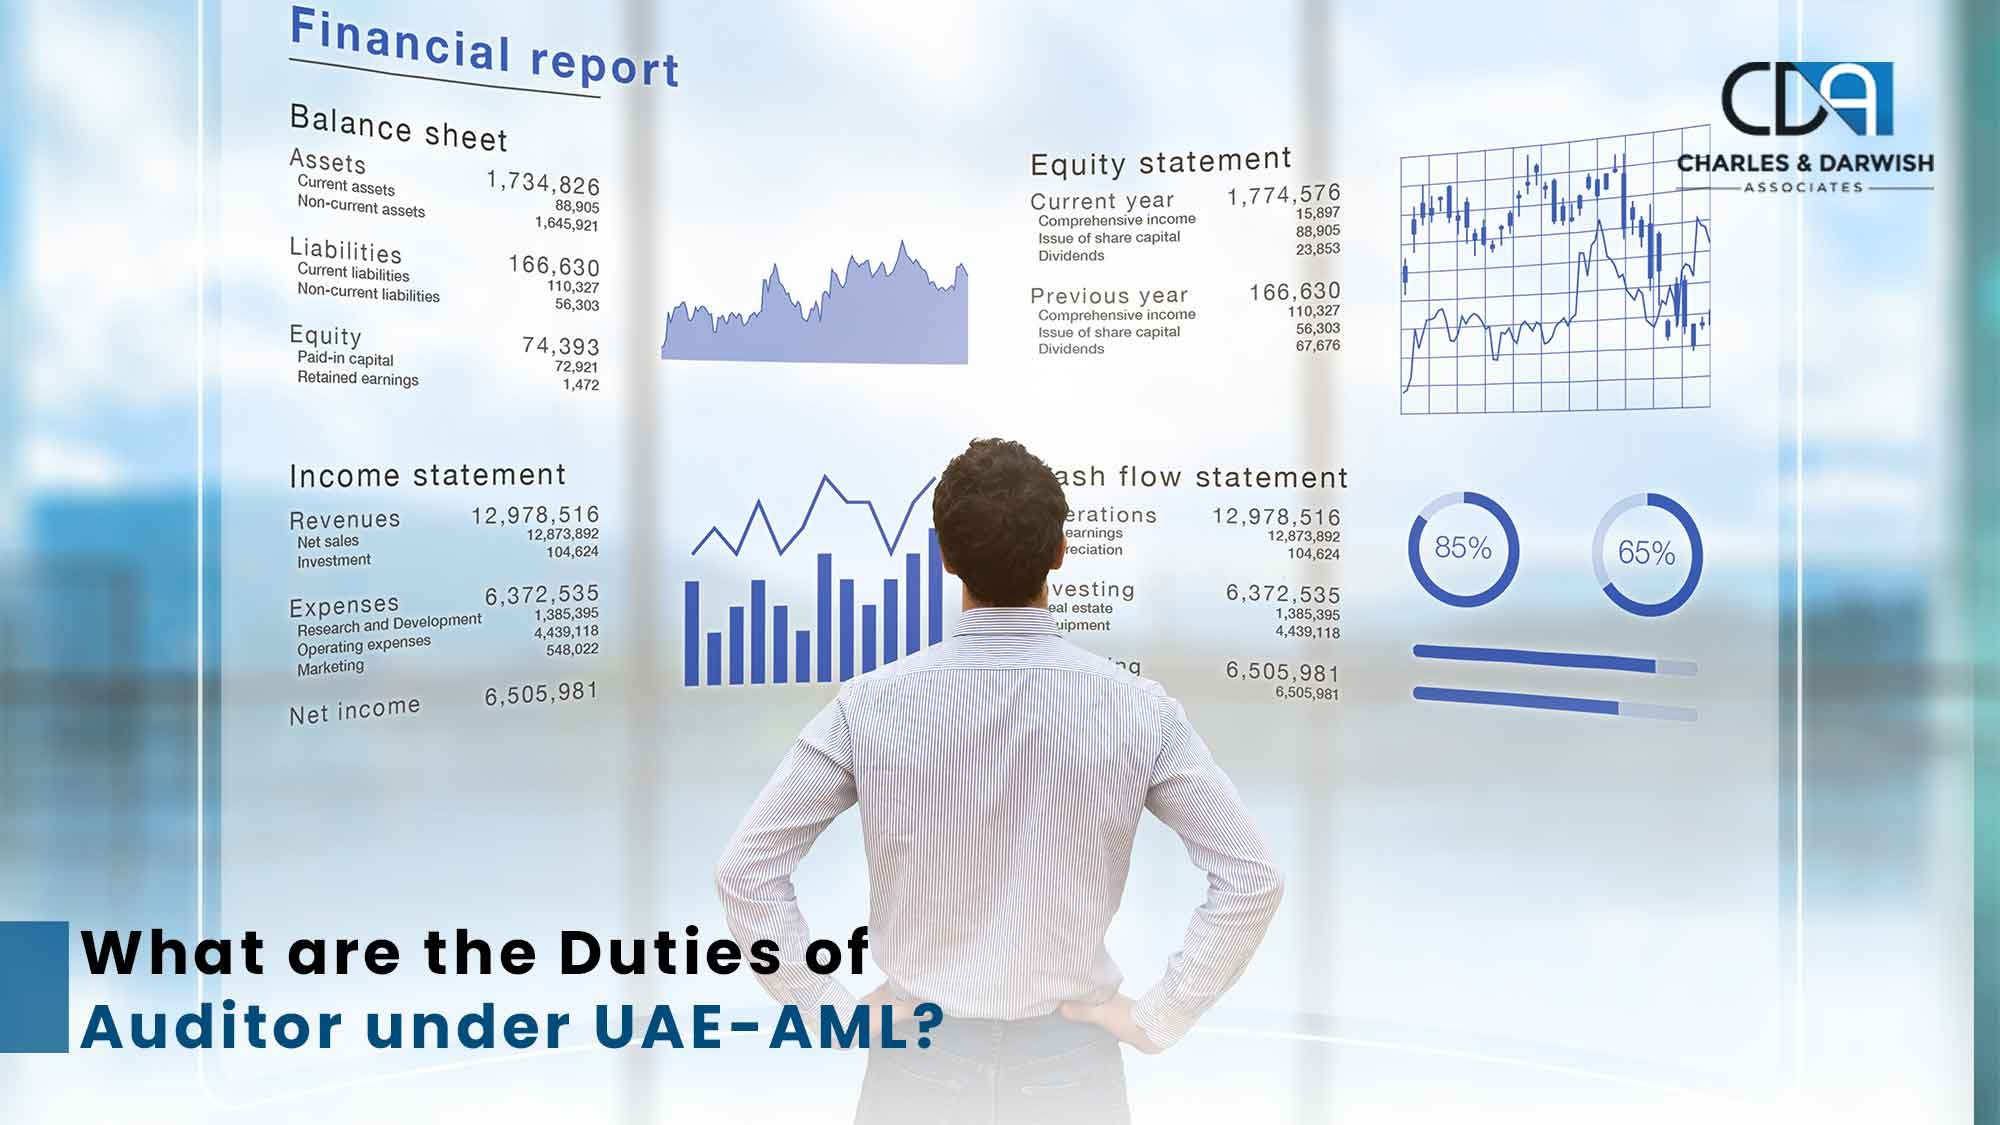 What Are The Duties of An Auditor Under UAE-AML?